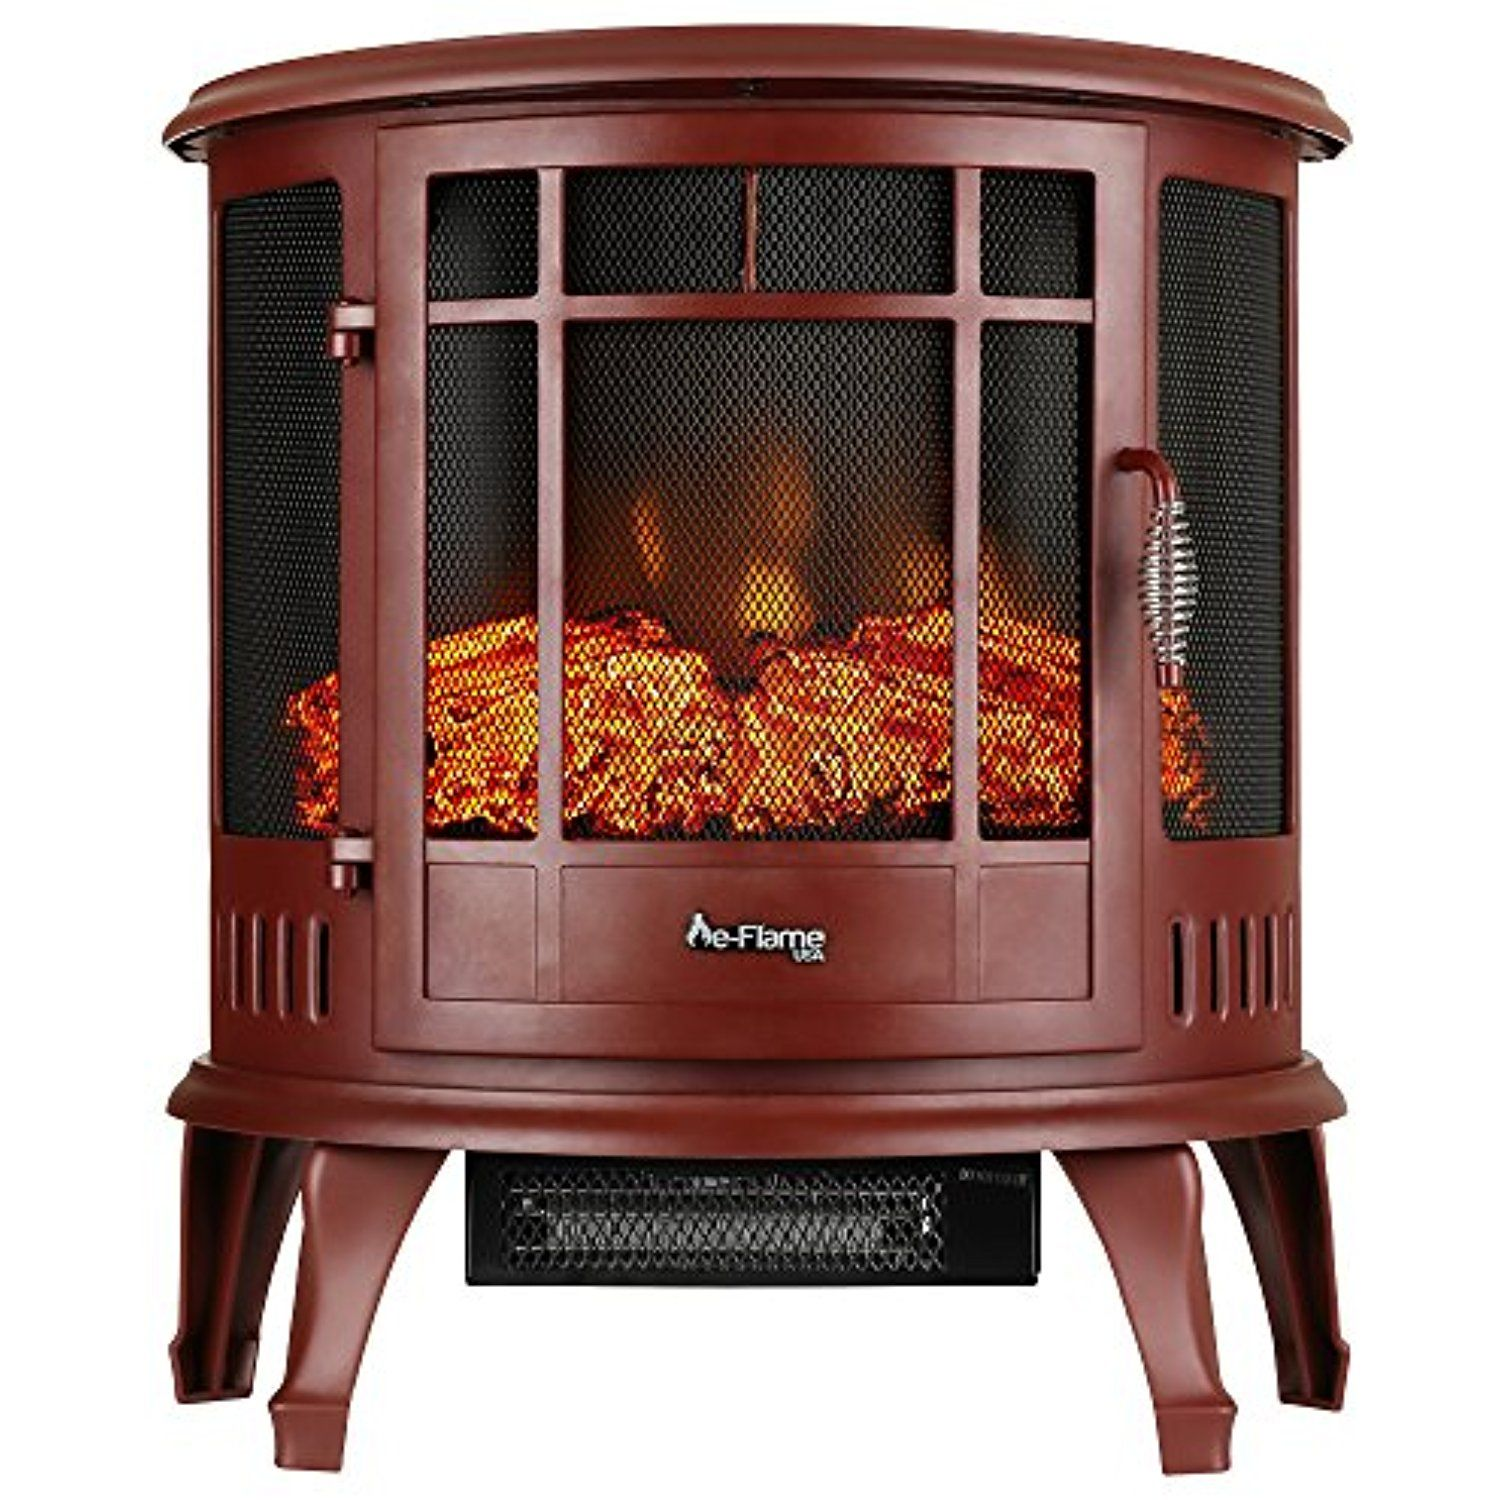 Regal Curved Portable Free Standing Electric Fireplace Stove by e